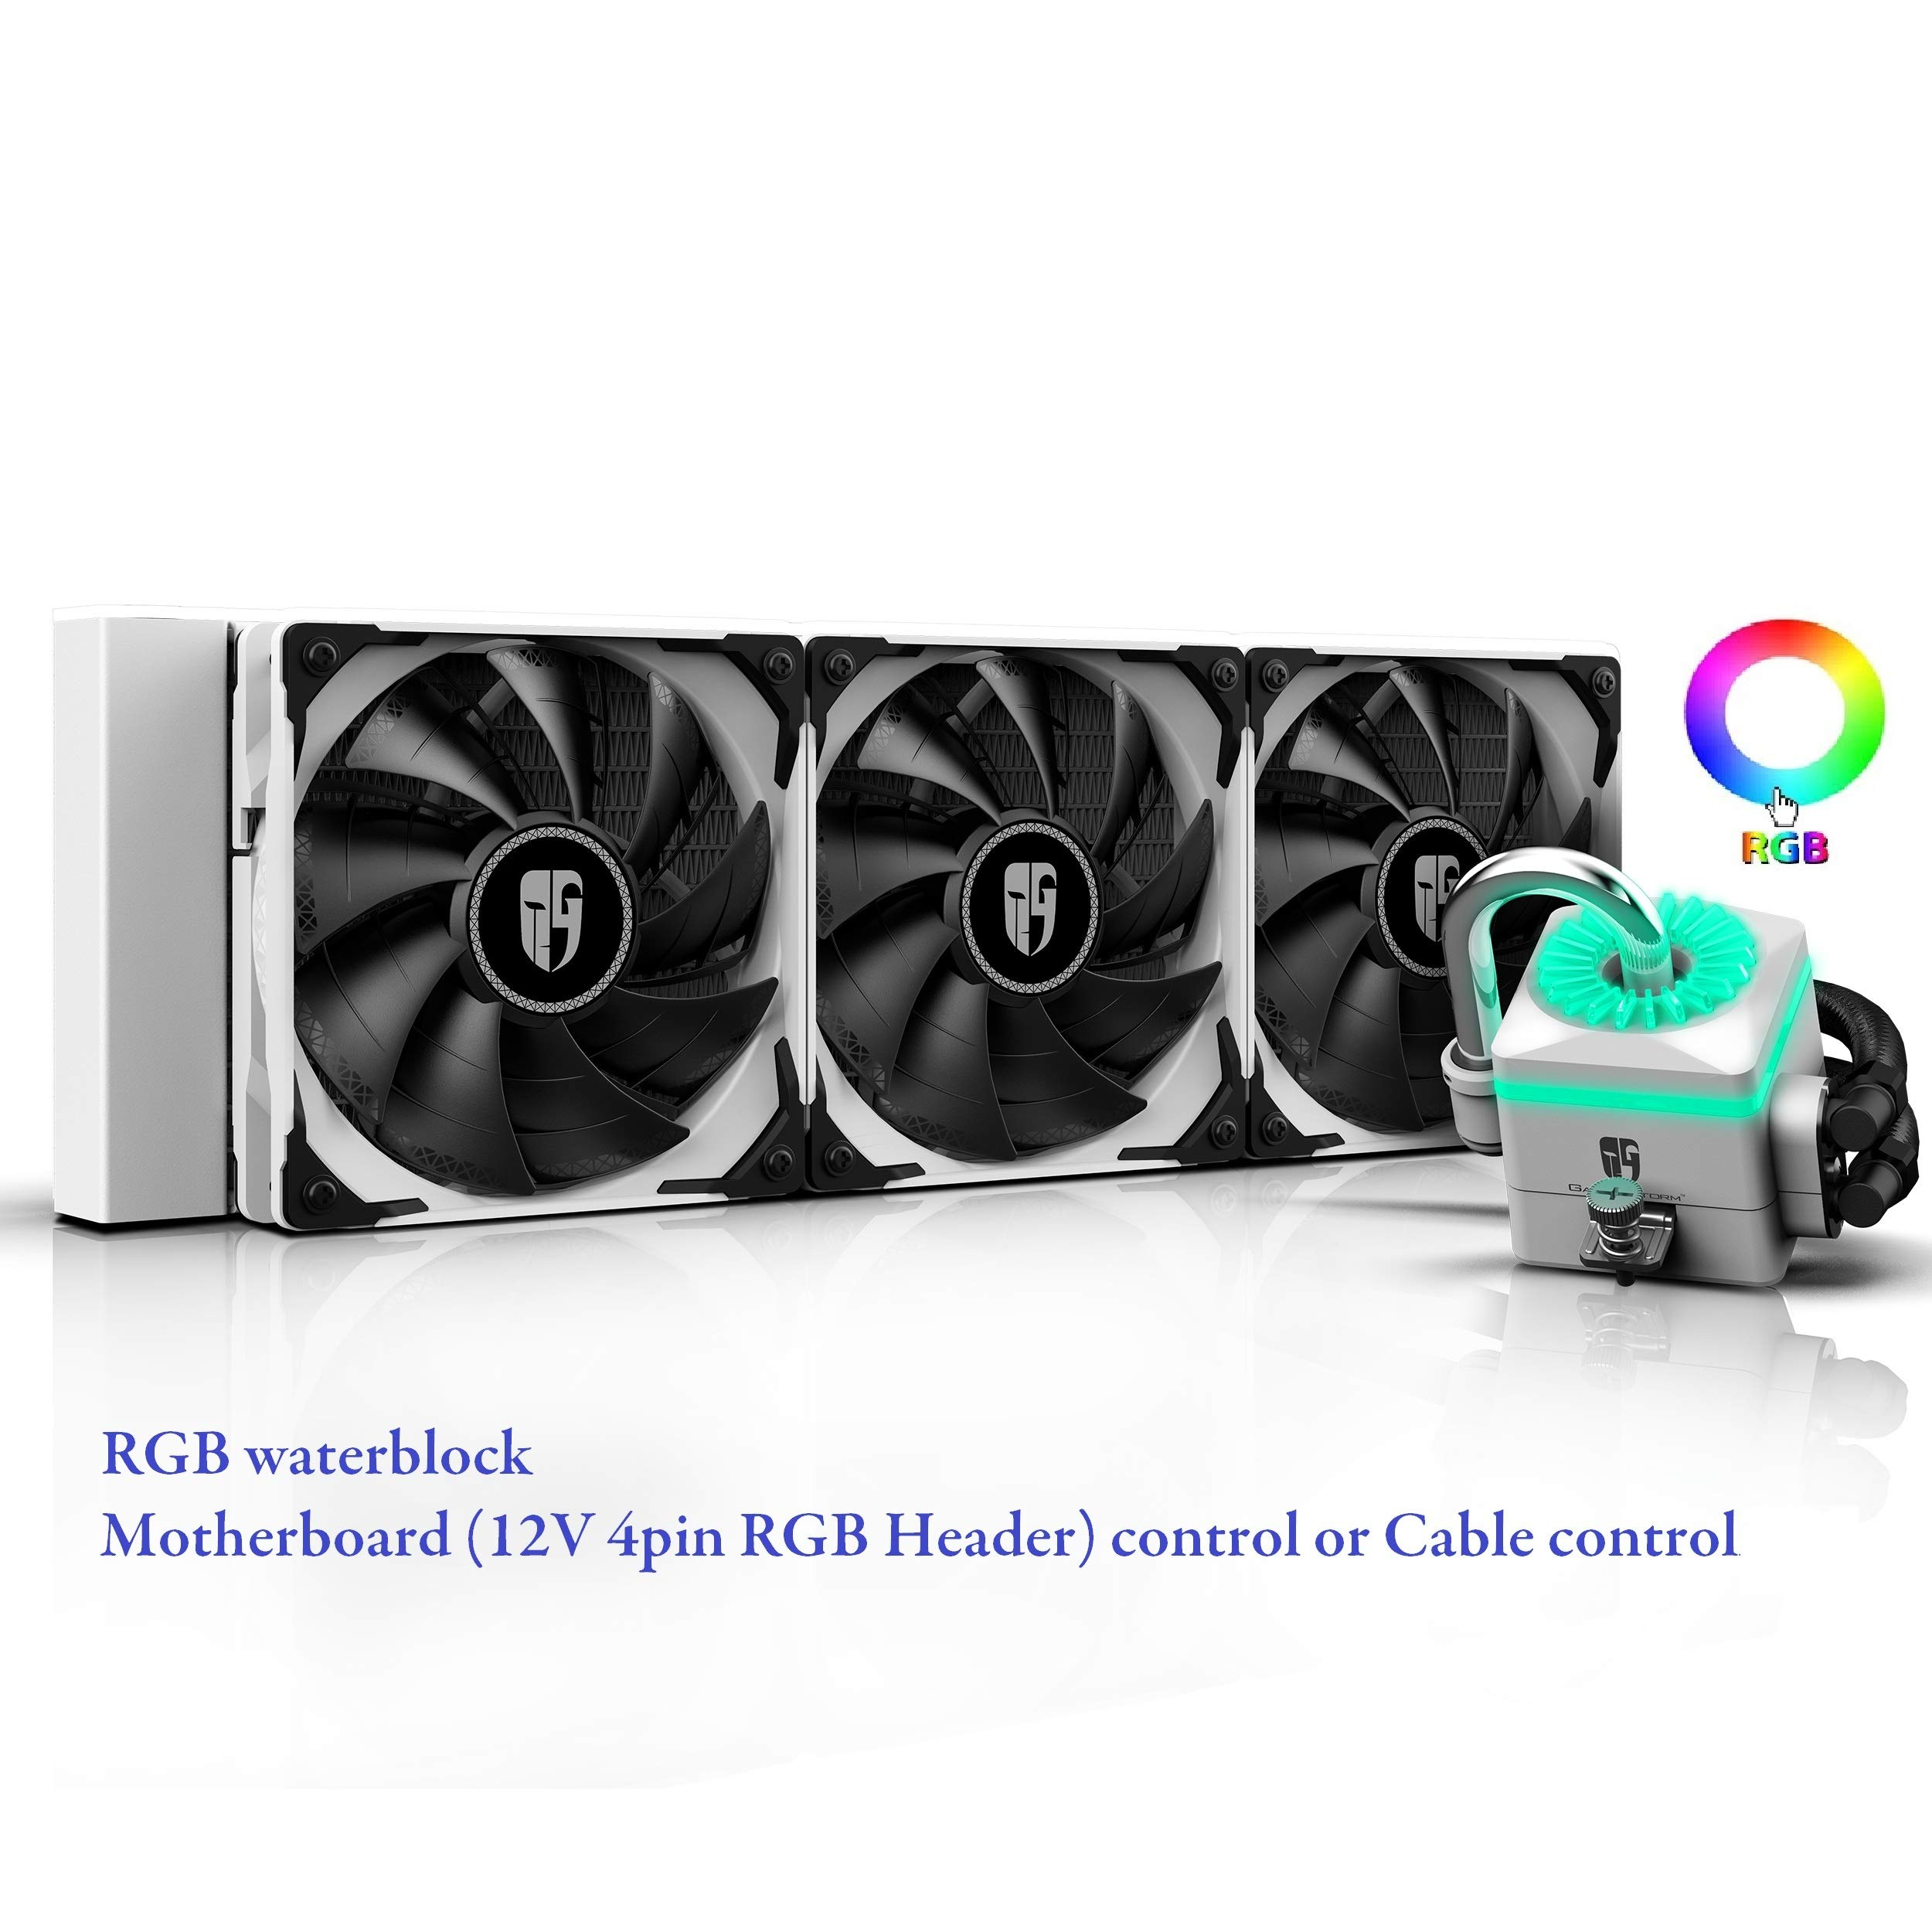 DEEP COOL Captain 360X WH RGB AIO CPU Liquid Cooler, Anti-Leak Tech Inside, Stainless Steel U-Shape Pipe, Cable Controller and Motherboard with 12V 4-pin RGB Header Control, 3-Year Warranty by DEEP COOL